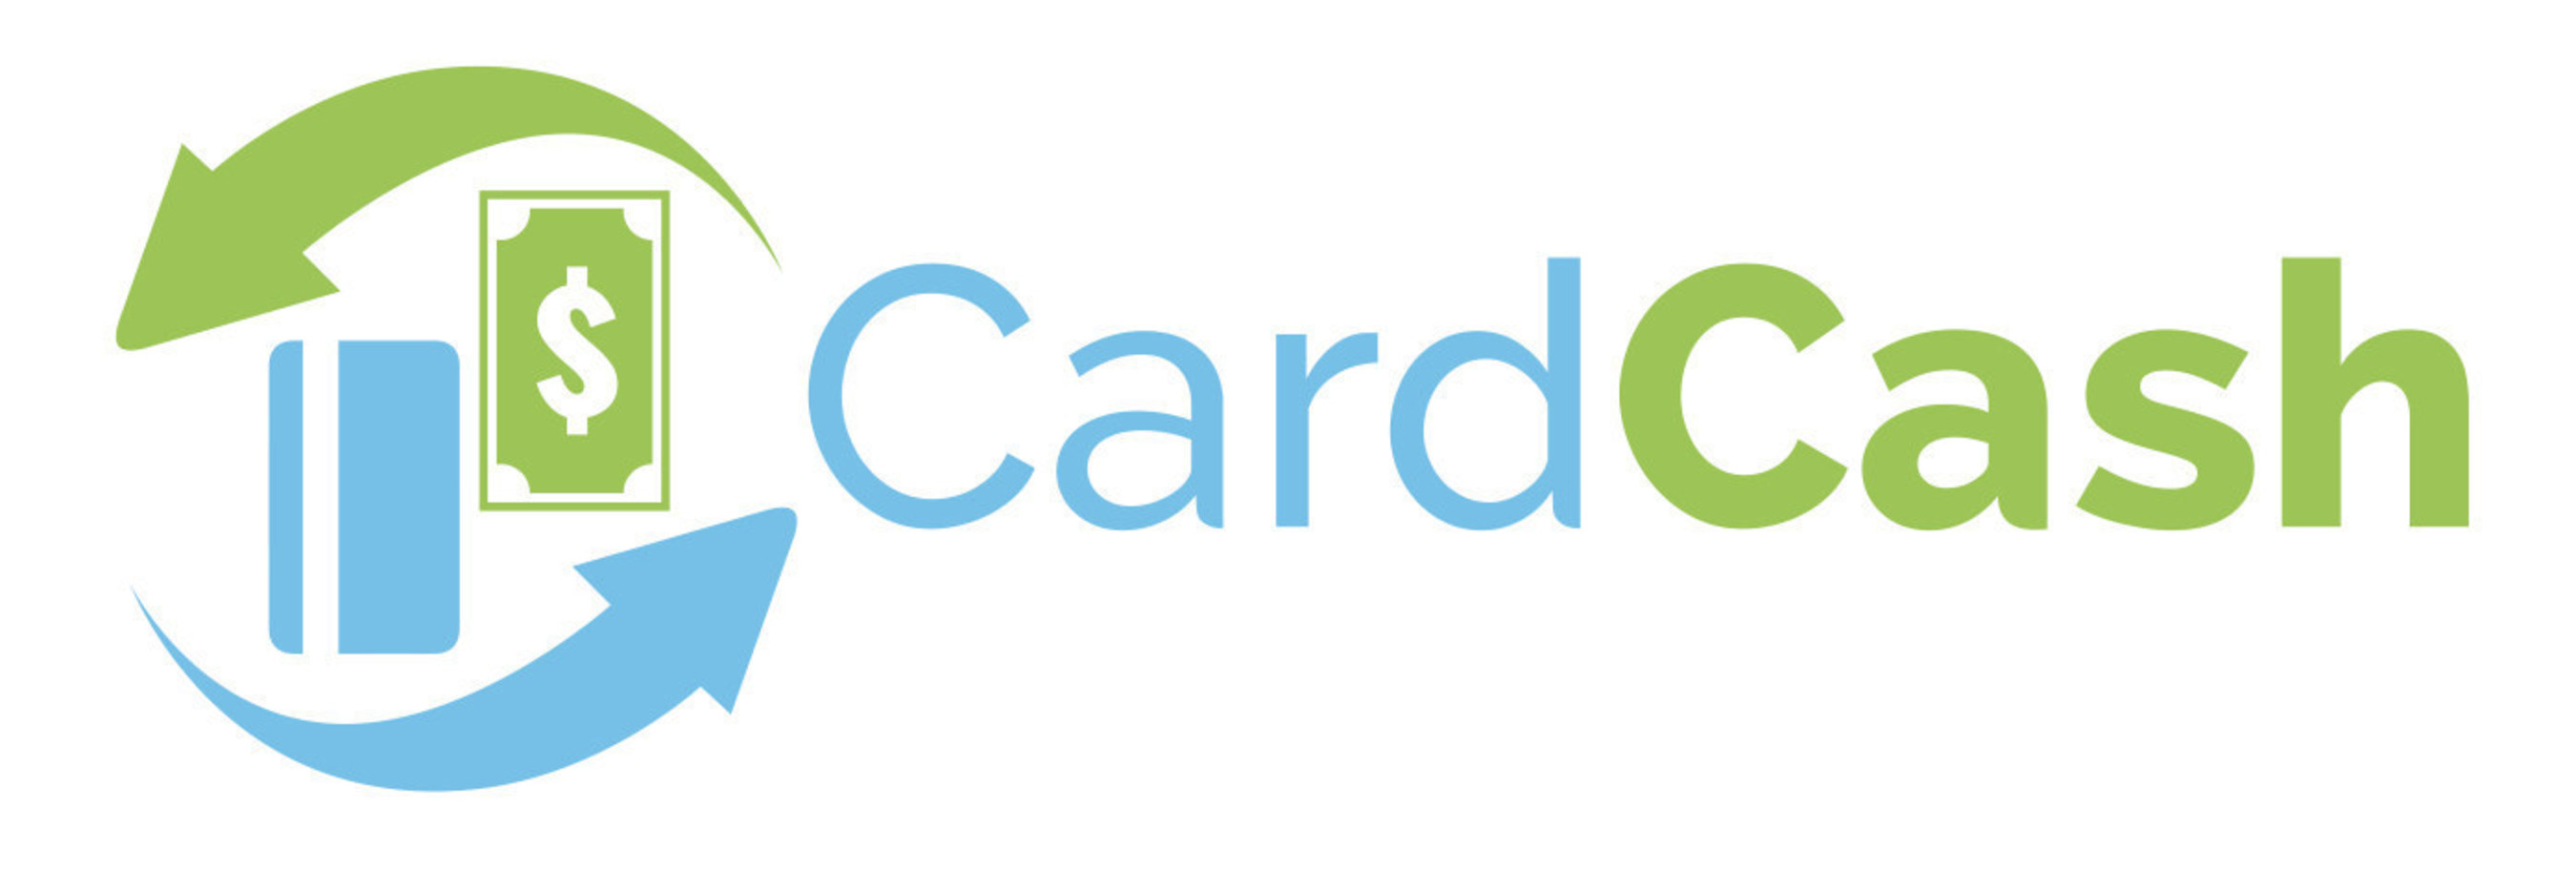 Cardcash Enters Into Partnership Agreement With Prepaid Giant Incomm